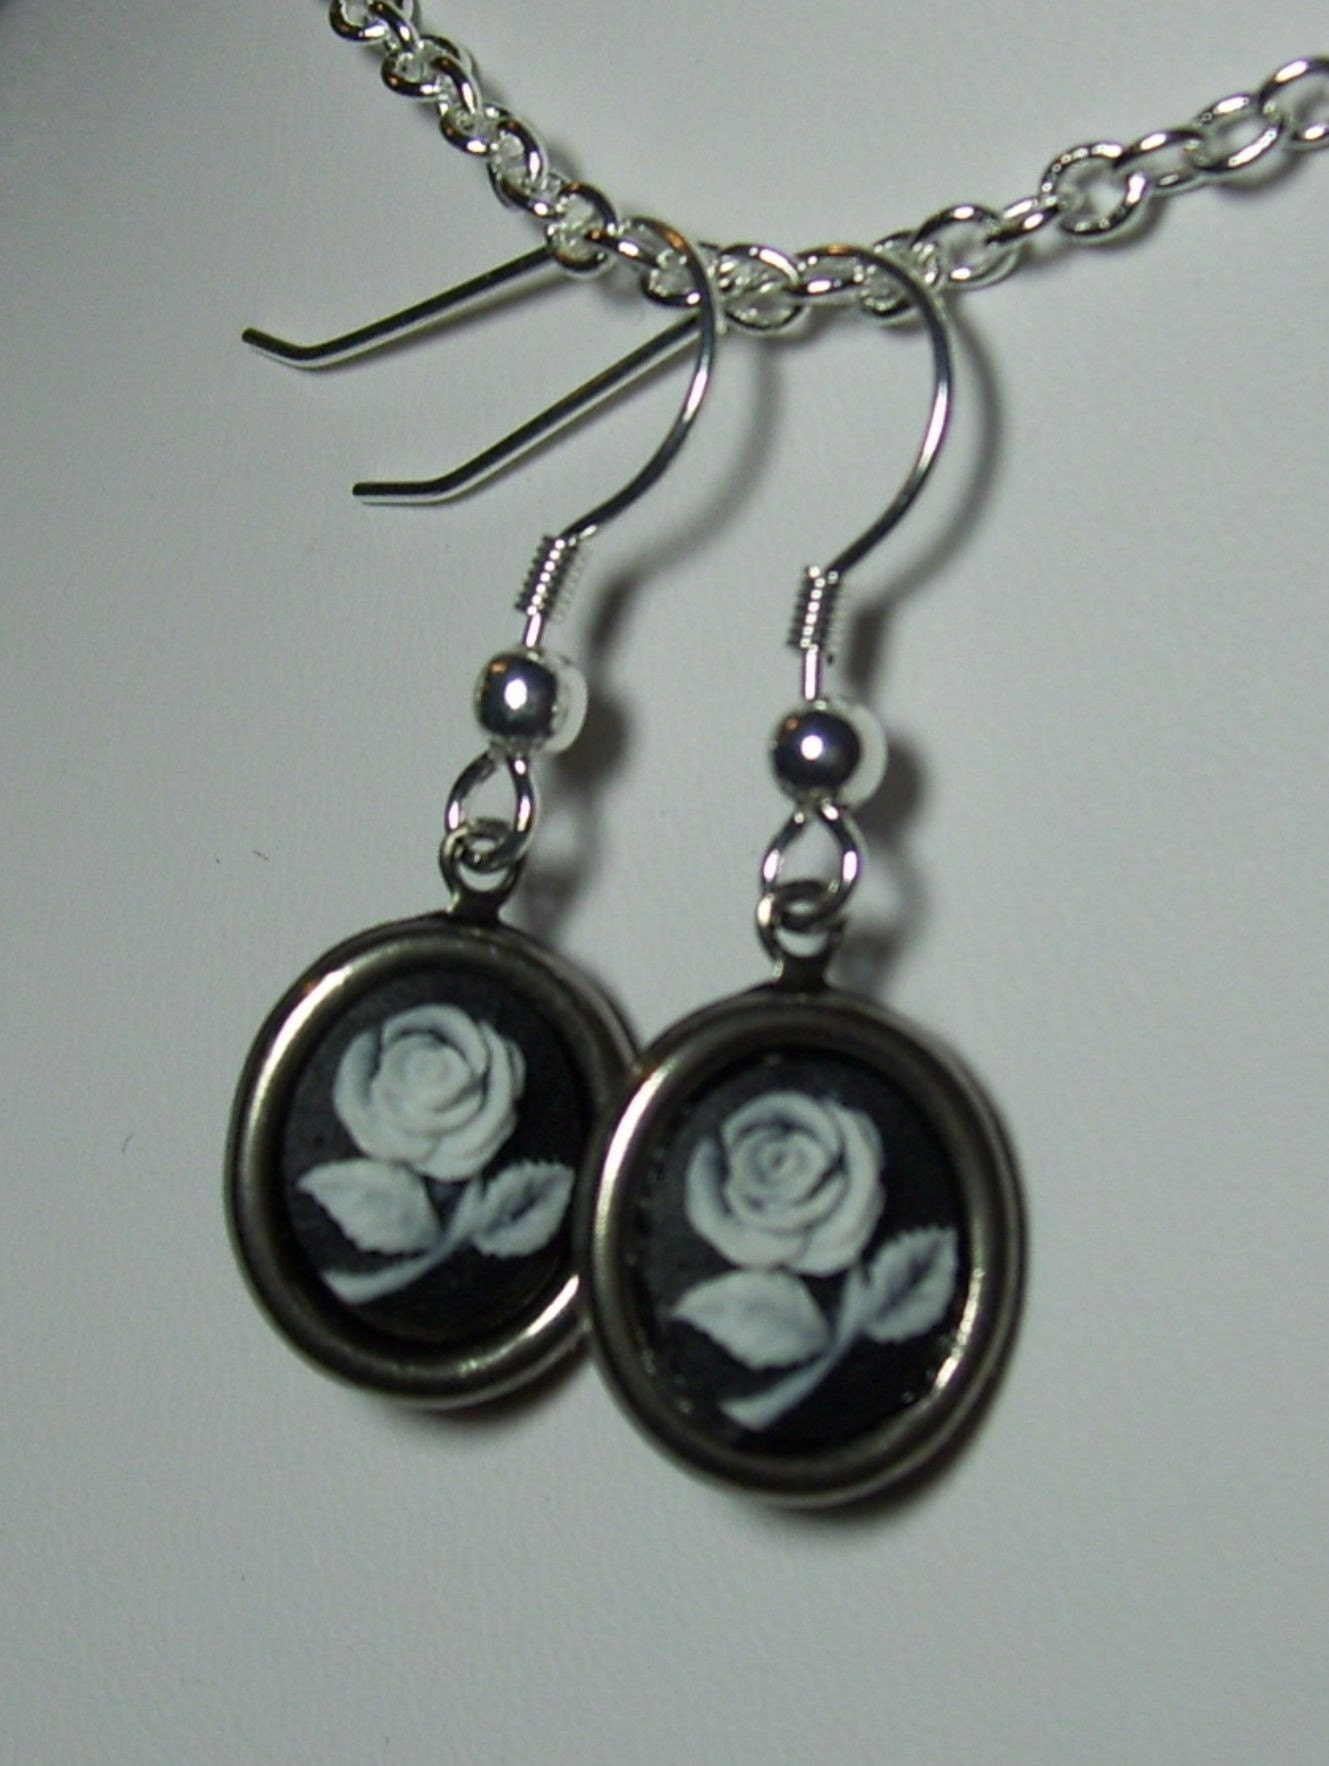 Simply Delicate Tiny Rose Cameo Flower Neo Victorian Steampunk Earrings Silver Black White